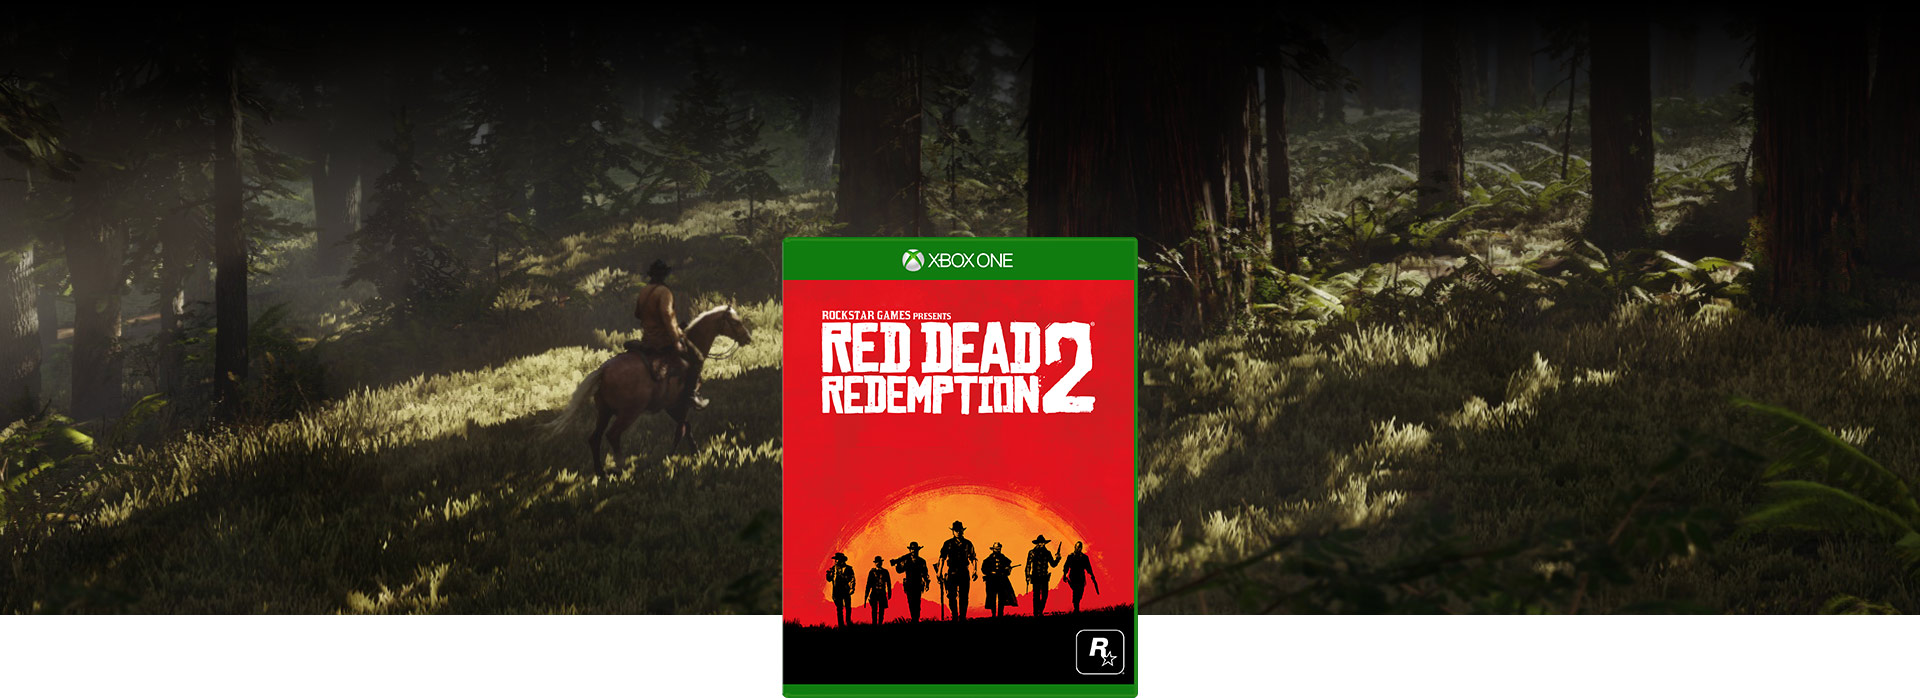 Red Dead Redemption 2 coverbilde